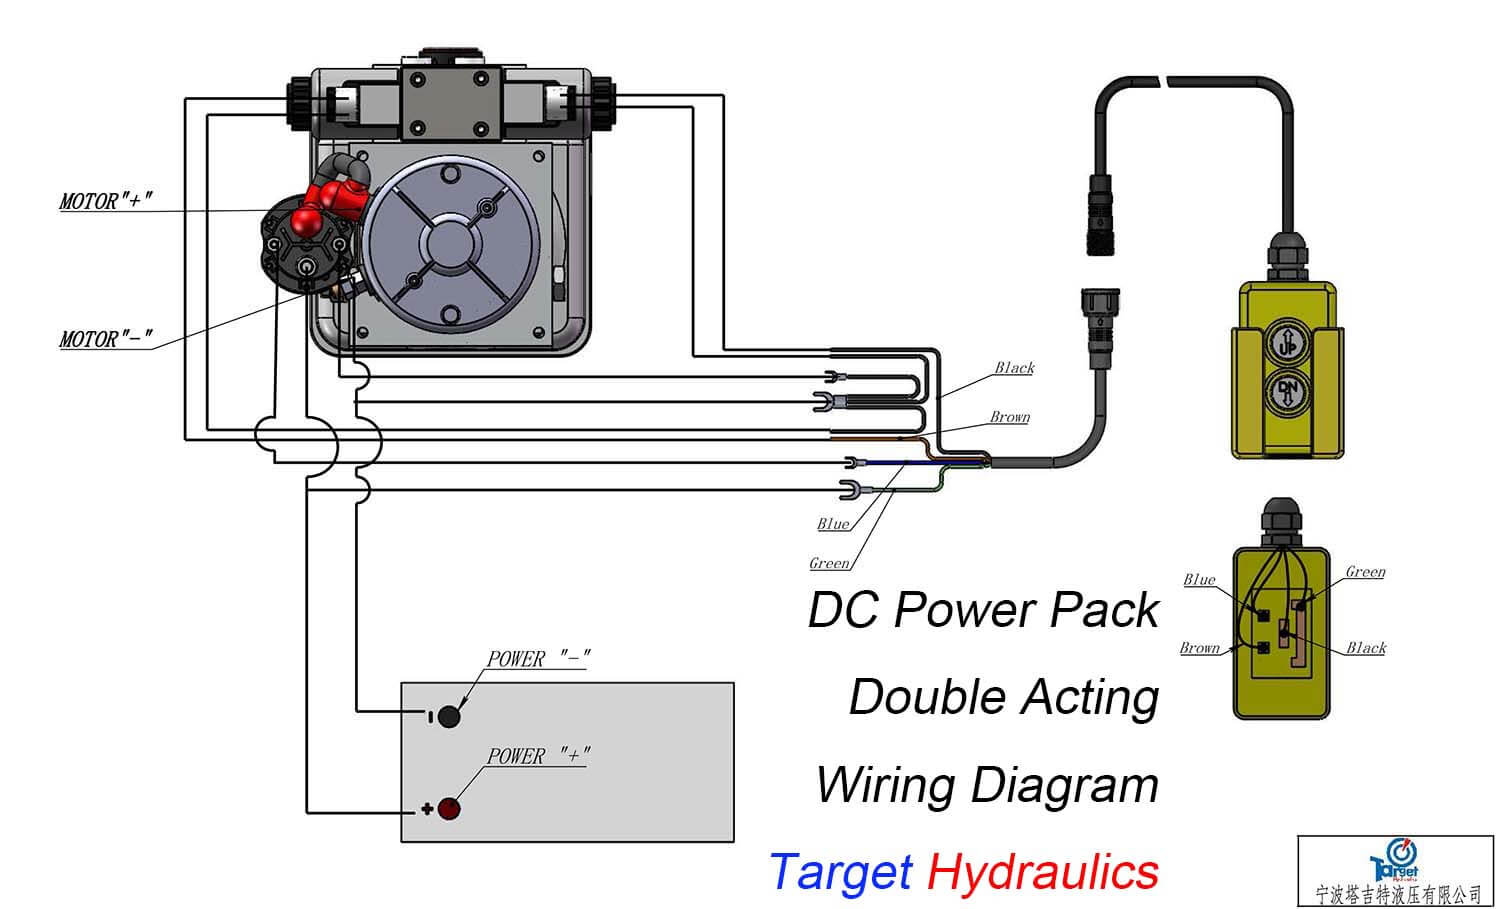 12v Hydraulic Pump Motor Also Wiring Diagram 12 Volt Hydraulic ... on 12 volt piston, 12 volt turn signals, 12 volt wiring junction box, 12 volt boat wiring, 12 volt wiring for rv, 24 volt system diagram, 12 volt starter, 12 volt fuel gauge, 12 volt wiring for cabins, 12 volt fuse, 12 volt wiring system, 12 volt steering, 5.1 surround sound setup diagram, 12 volt wiring symbols, 12 volt wire, 12 volt assembly, 12 volt wiring supplies, 12 volt gauge wiring, 12 volt electrical wiring, 12 volt series wiring,